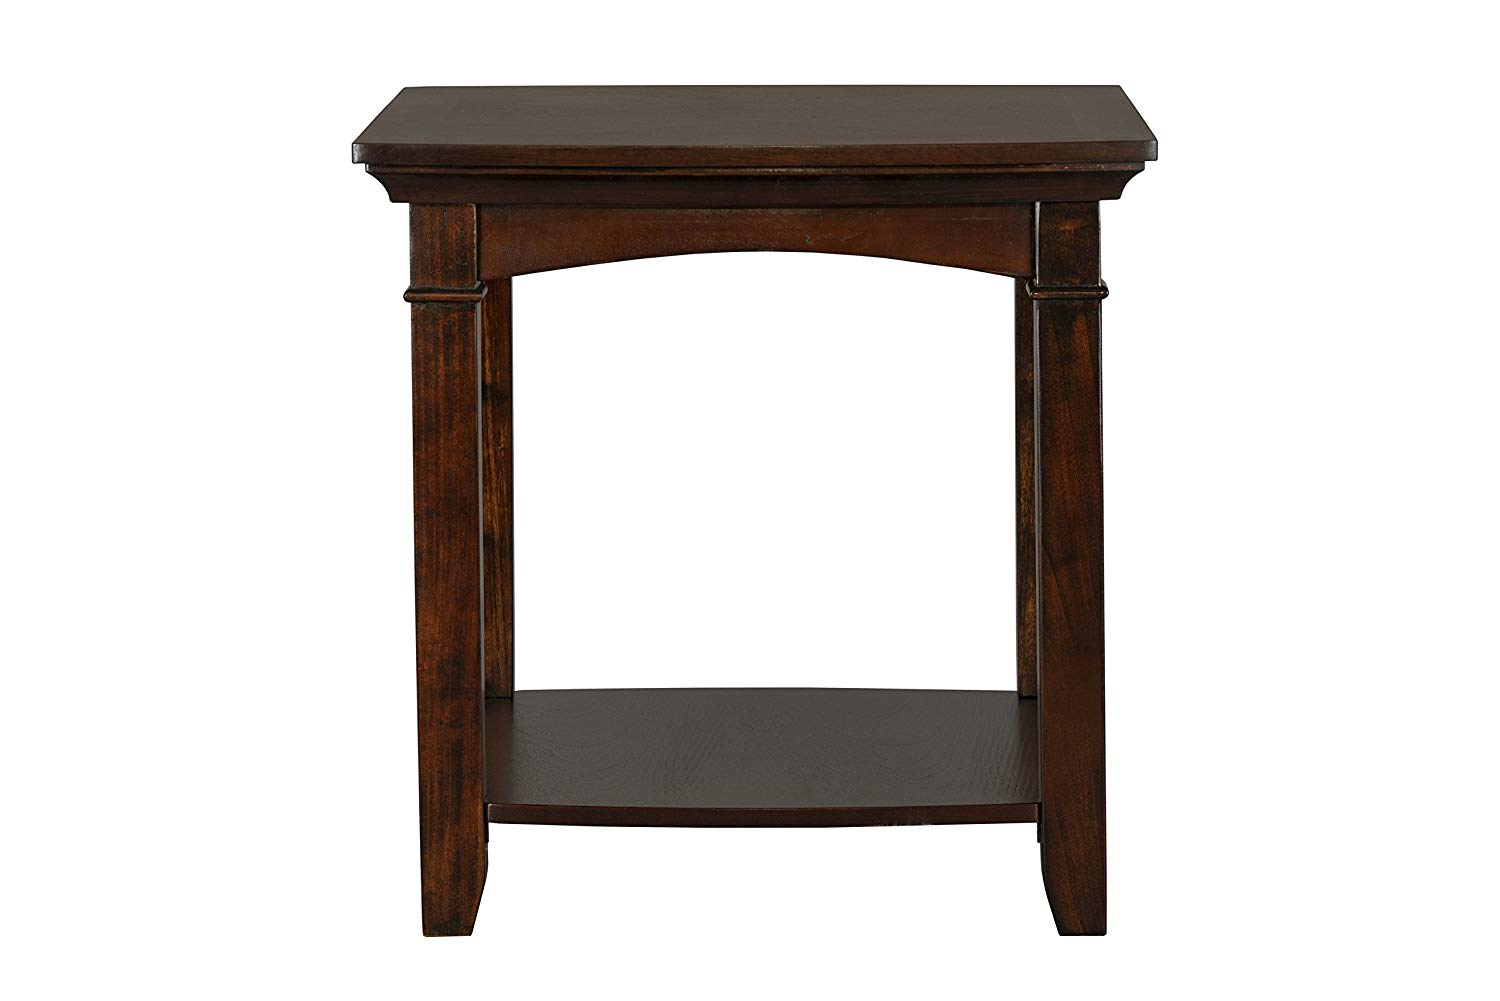 standard furniture glasgow rectangle end table dark cherry wood tables brown kitchen dining living room coffee saarinen riverside entertainment wall unit broyhill with storage